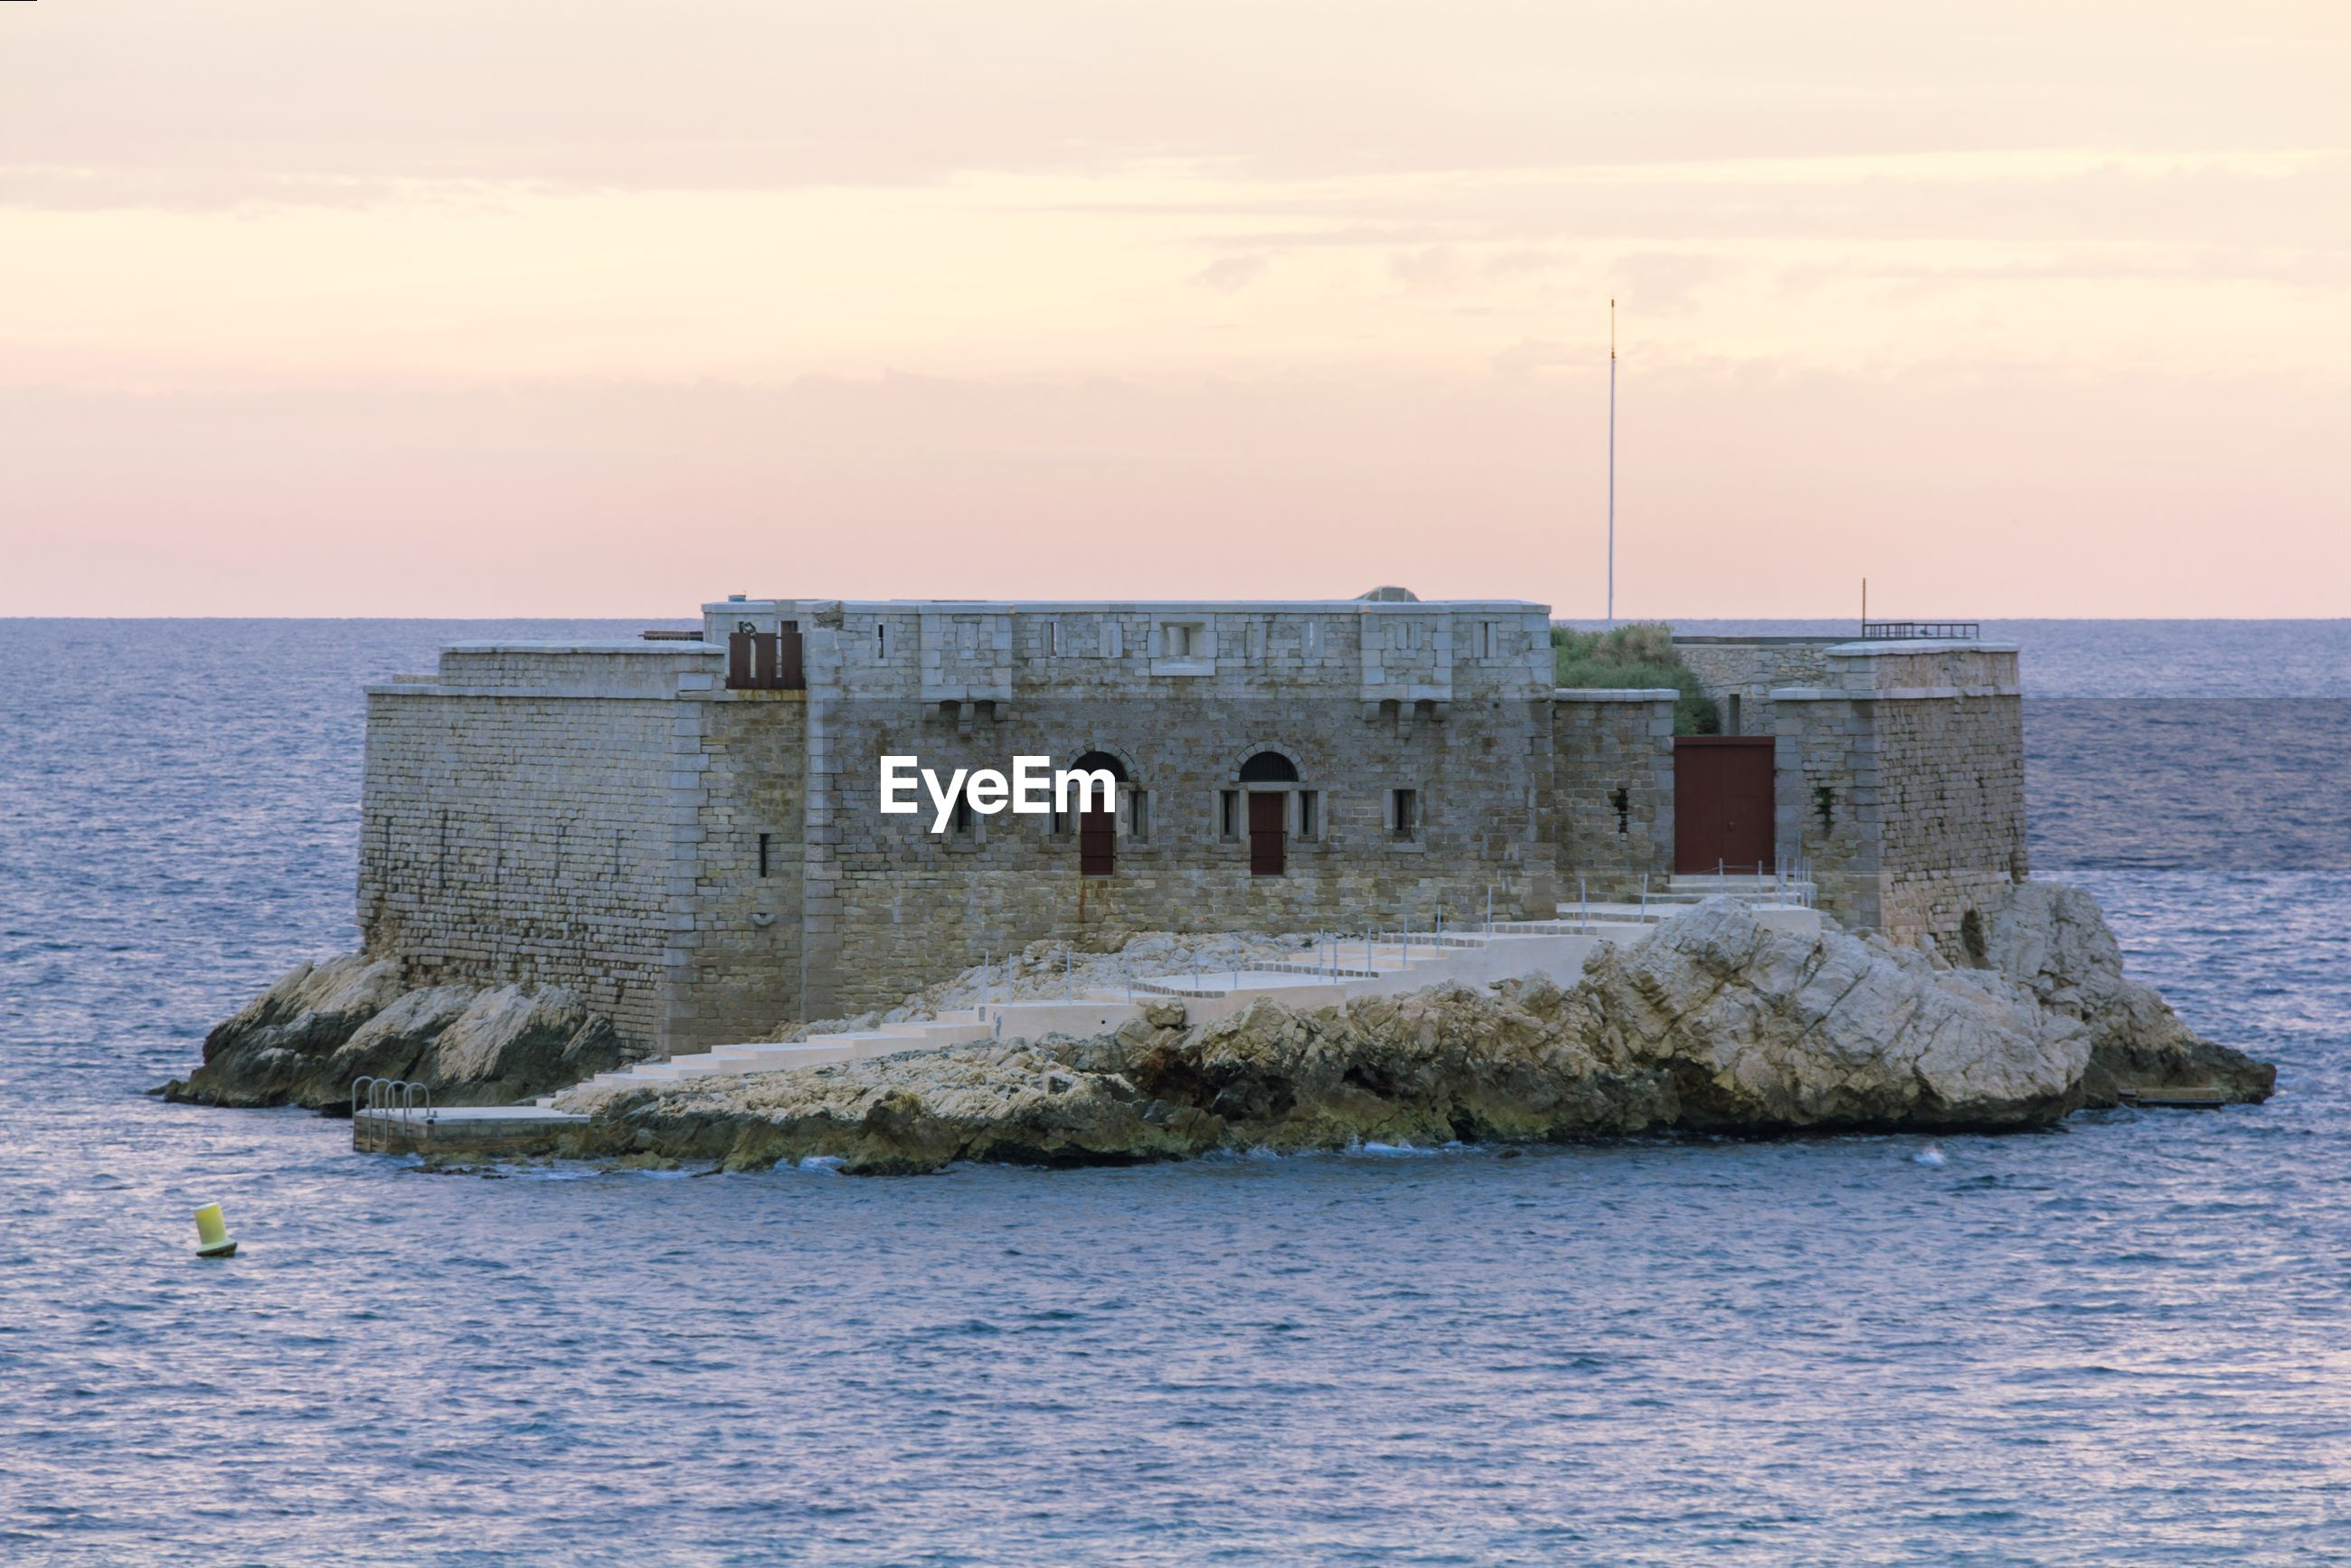 VIEW OF FORT AGAINST THE SEA